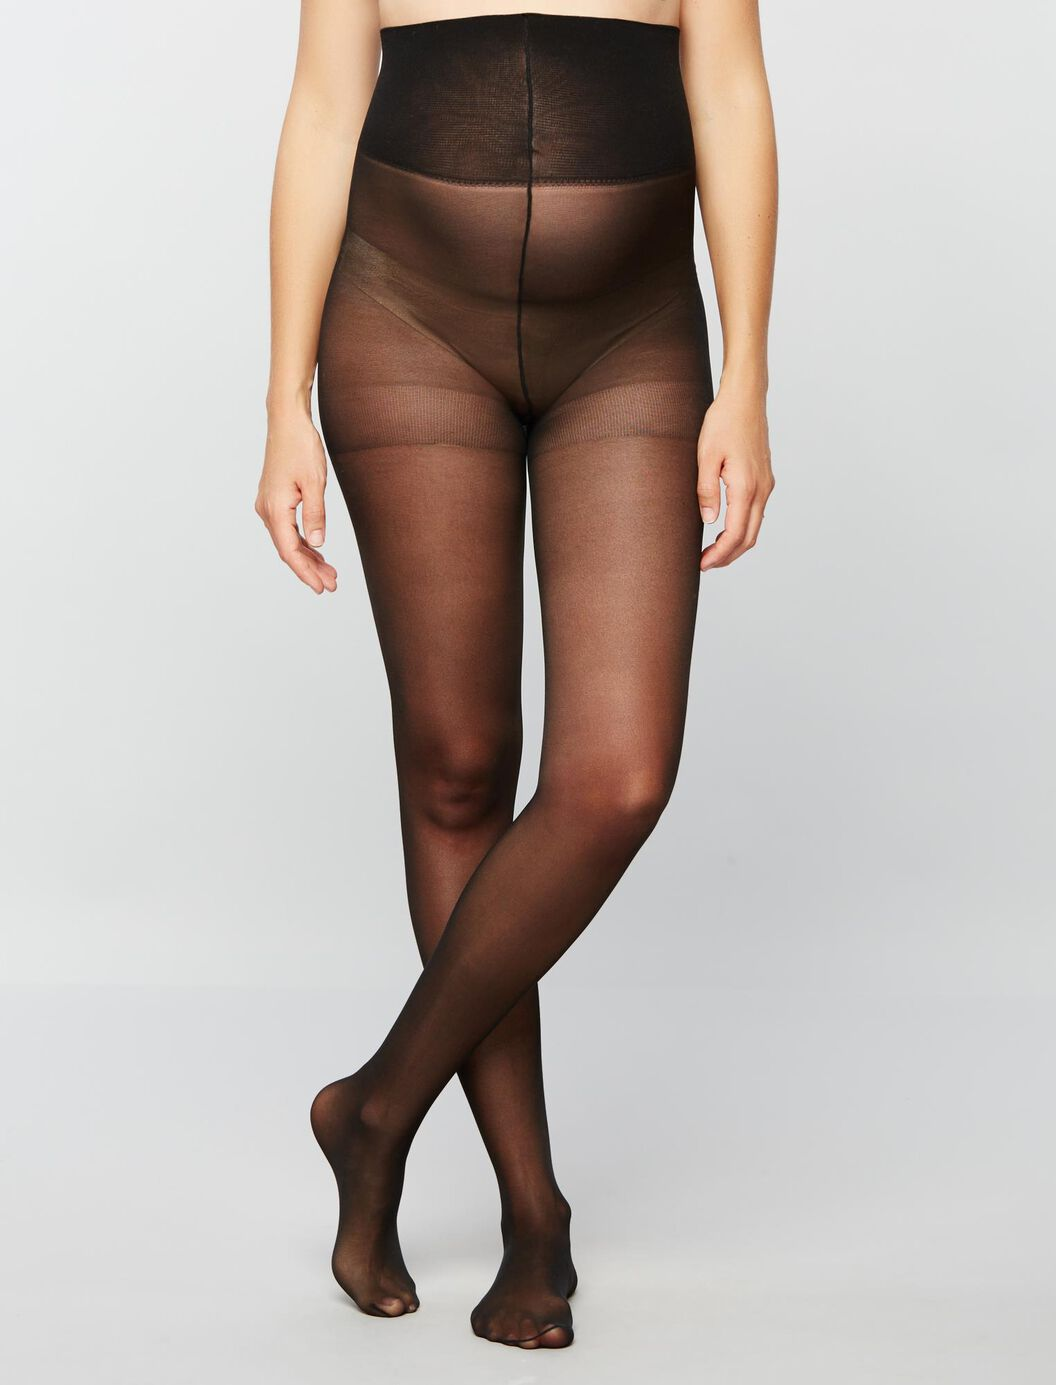 Light Compression Maternity Pantyhose | A Pea in the Pod ...